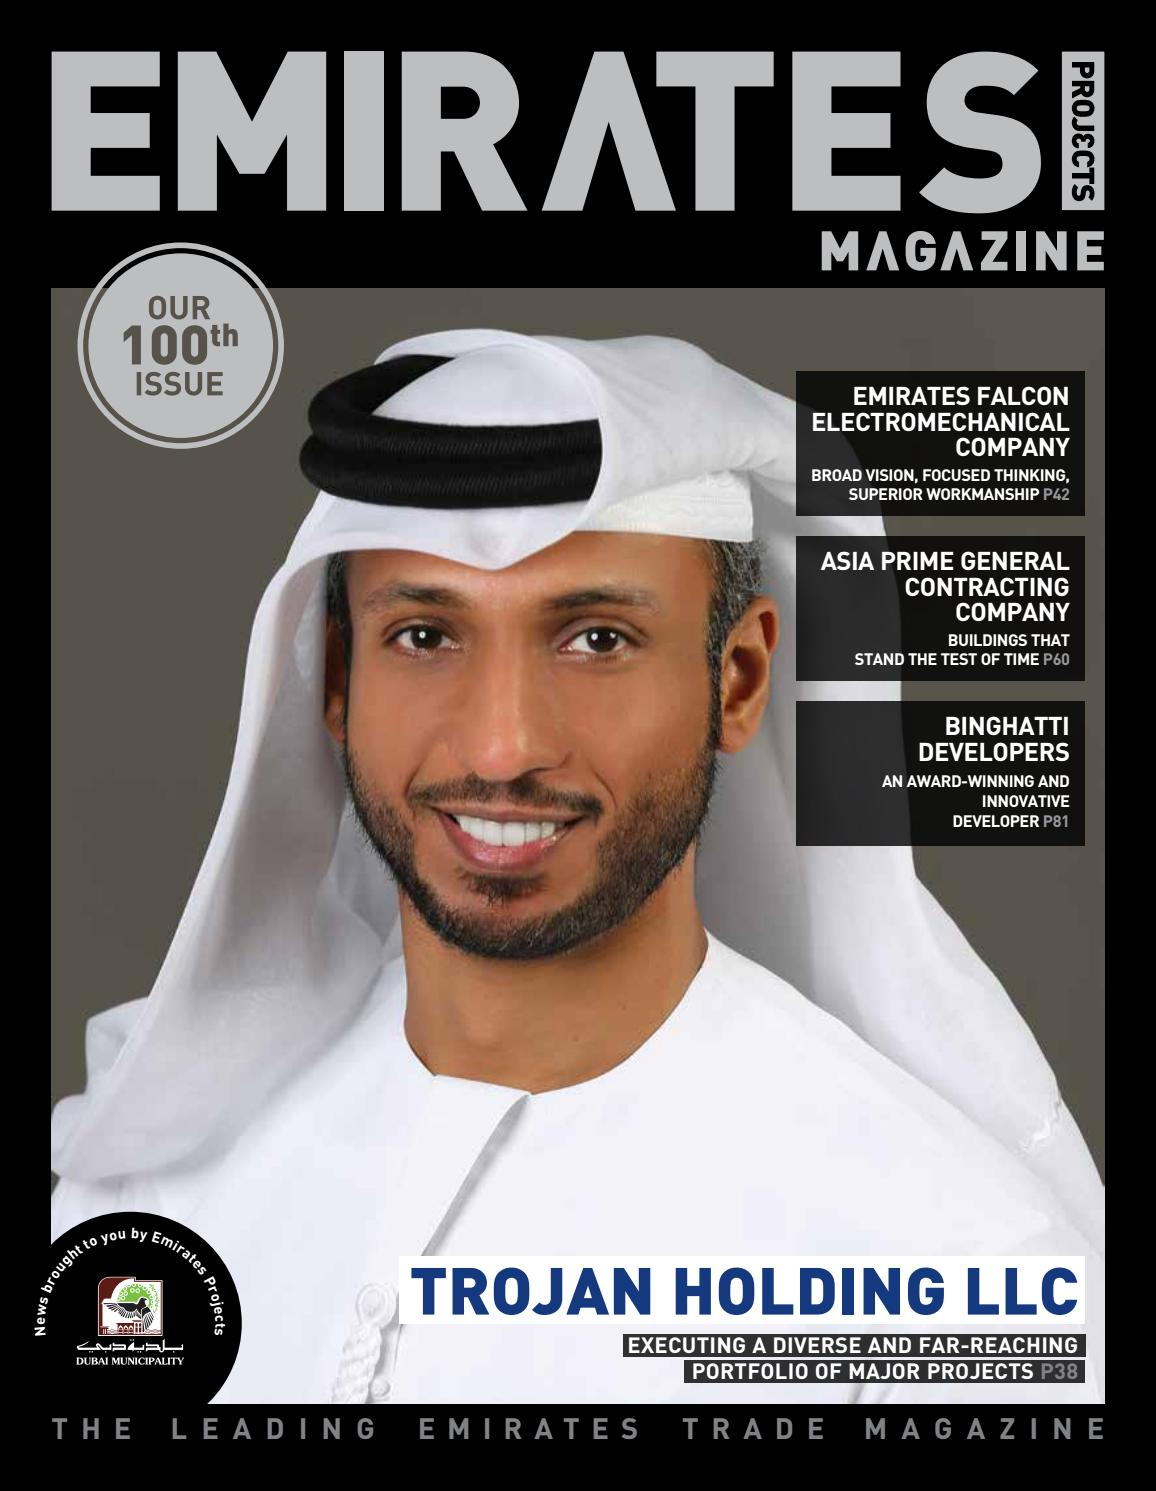 Emirates Projects Magazine Issue 100 by tpg publishing - issuu